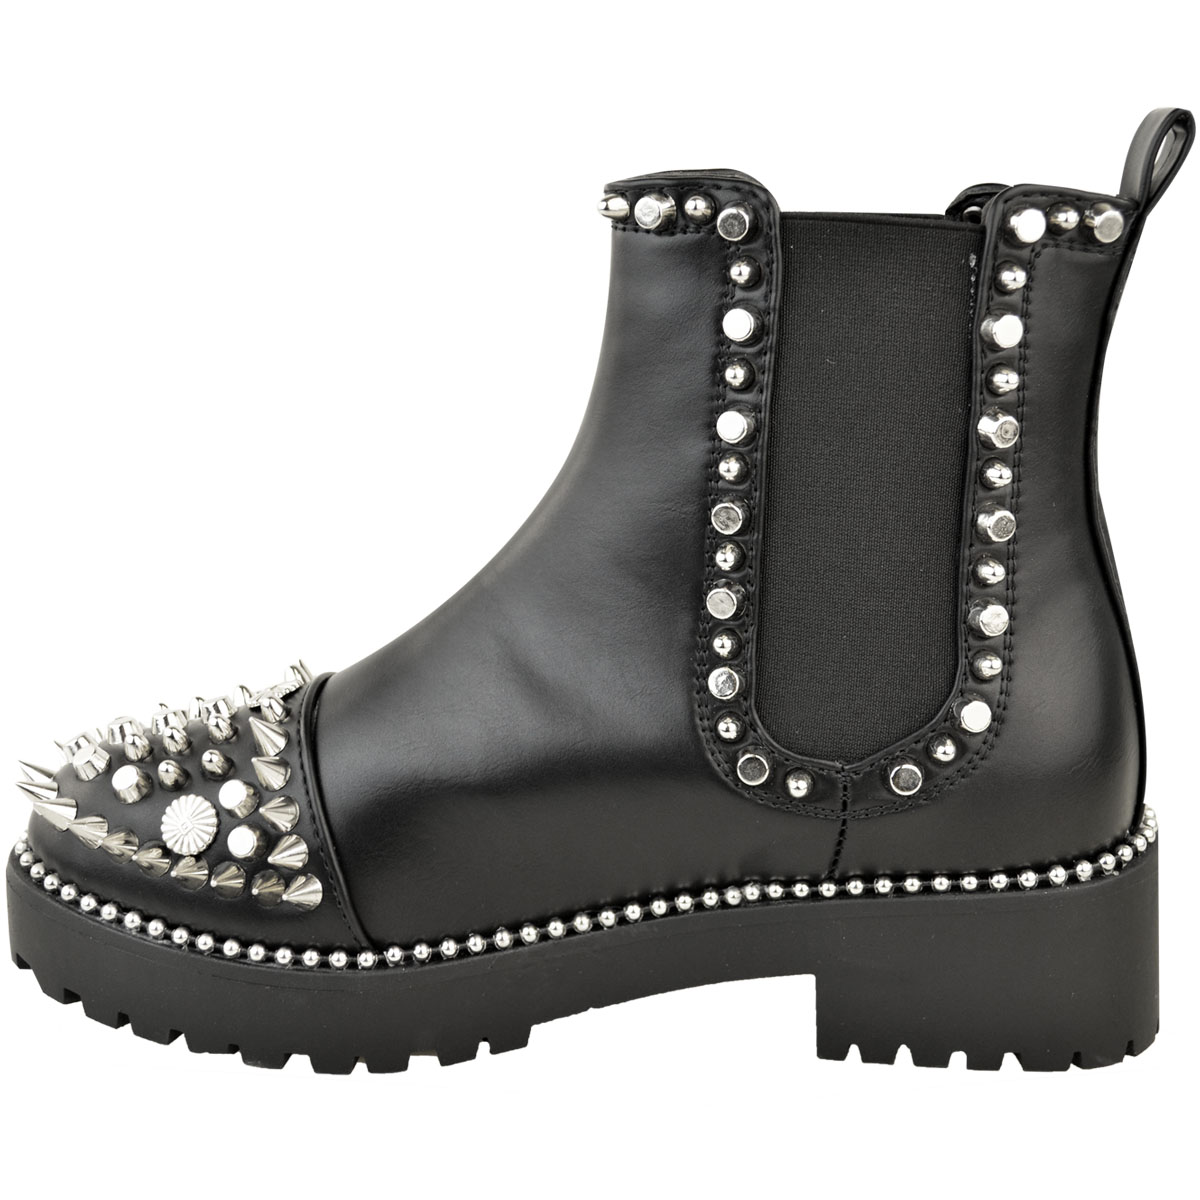 Womens-Ladies-Black-Flat-Winter-Ankle-Boots-Studded-Grunge-Pull-On-Chunky-Size thumbnail 4